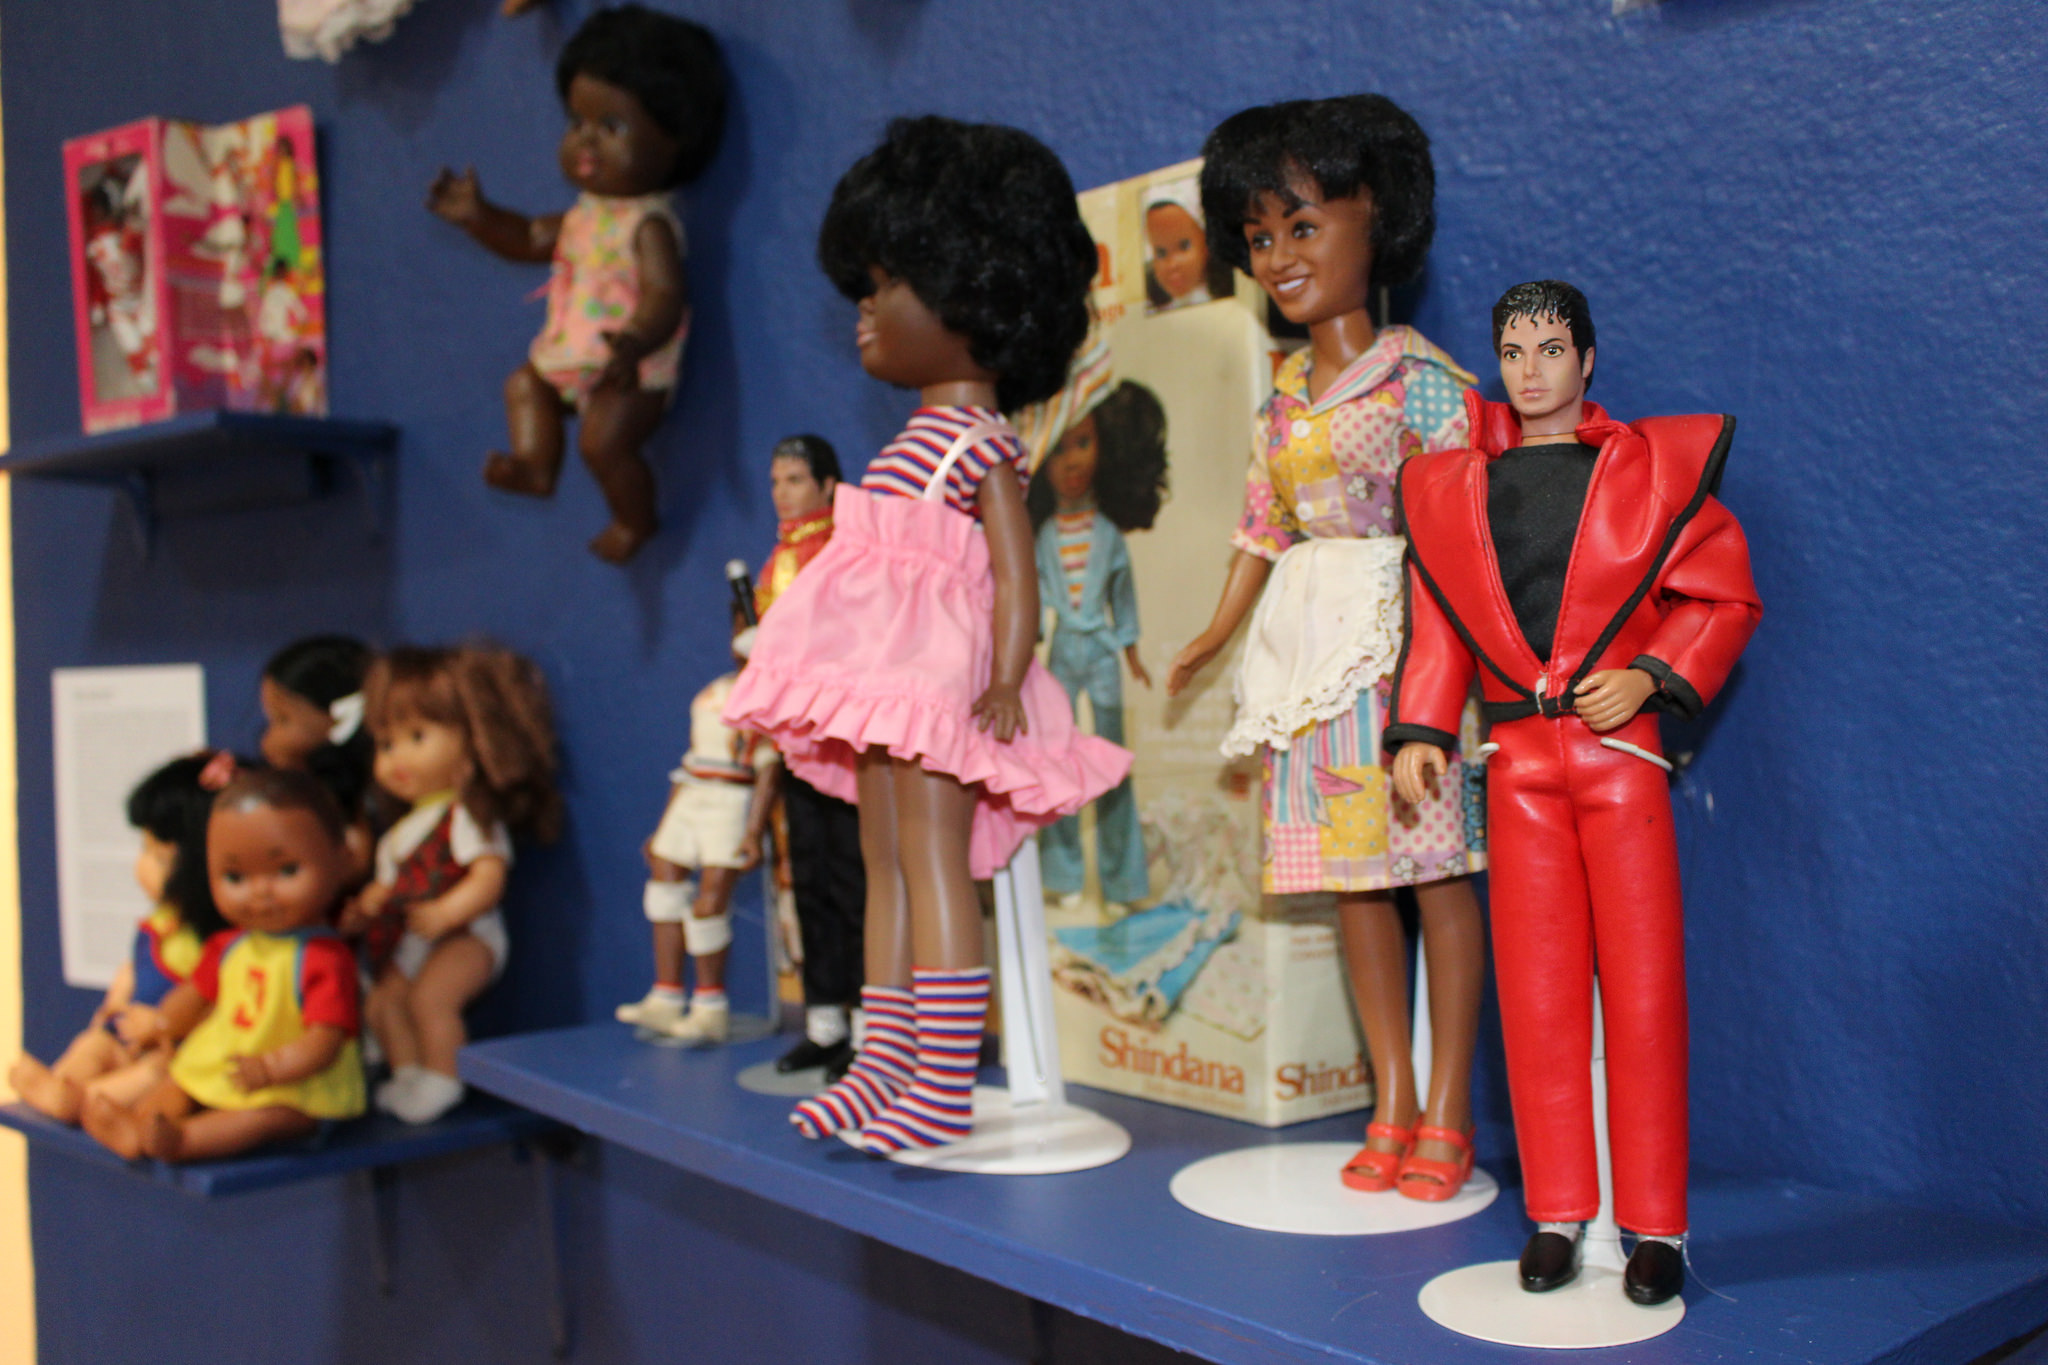 Installation view, The West Adams Collectors Club: Collecting, Archiving and Exhibiting Your Own Cultural History at the William Grant Still Arts Center, Los Angeles, 2015. Courtesy of the William Grant Still Arts Center.